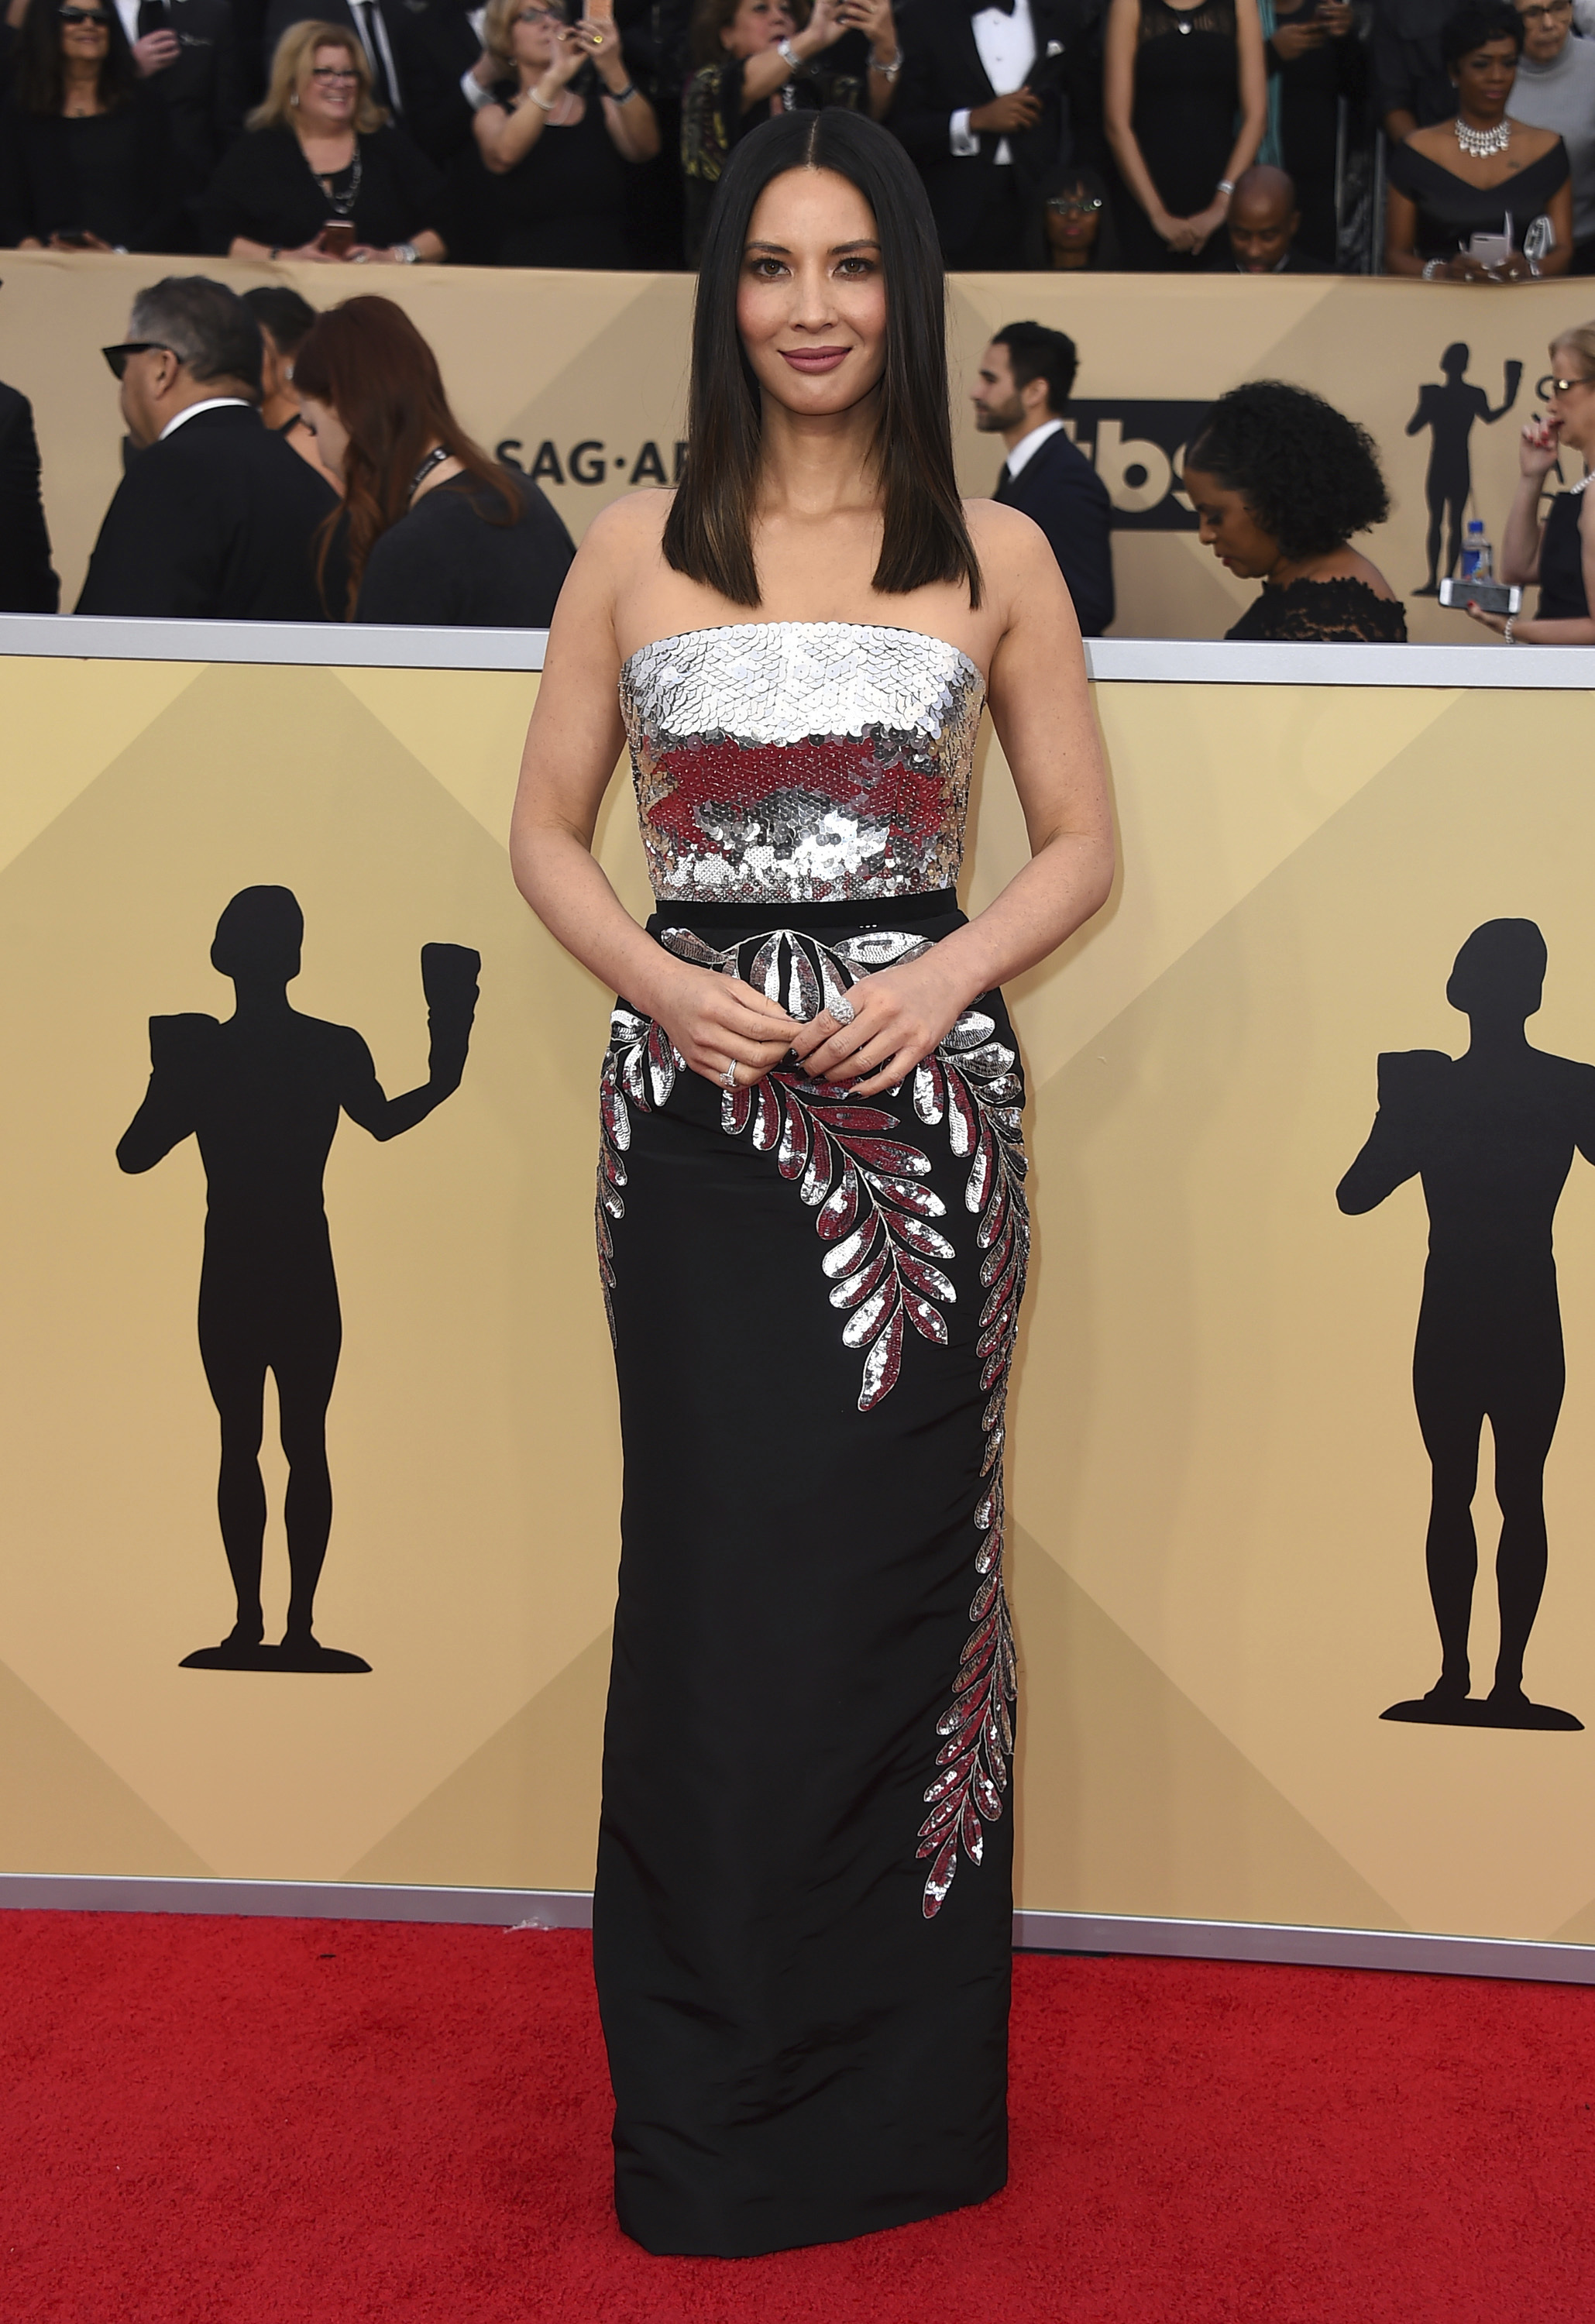 Olivia Munn arrives at the 24th annual Screen Actors Guild Awards